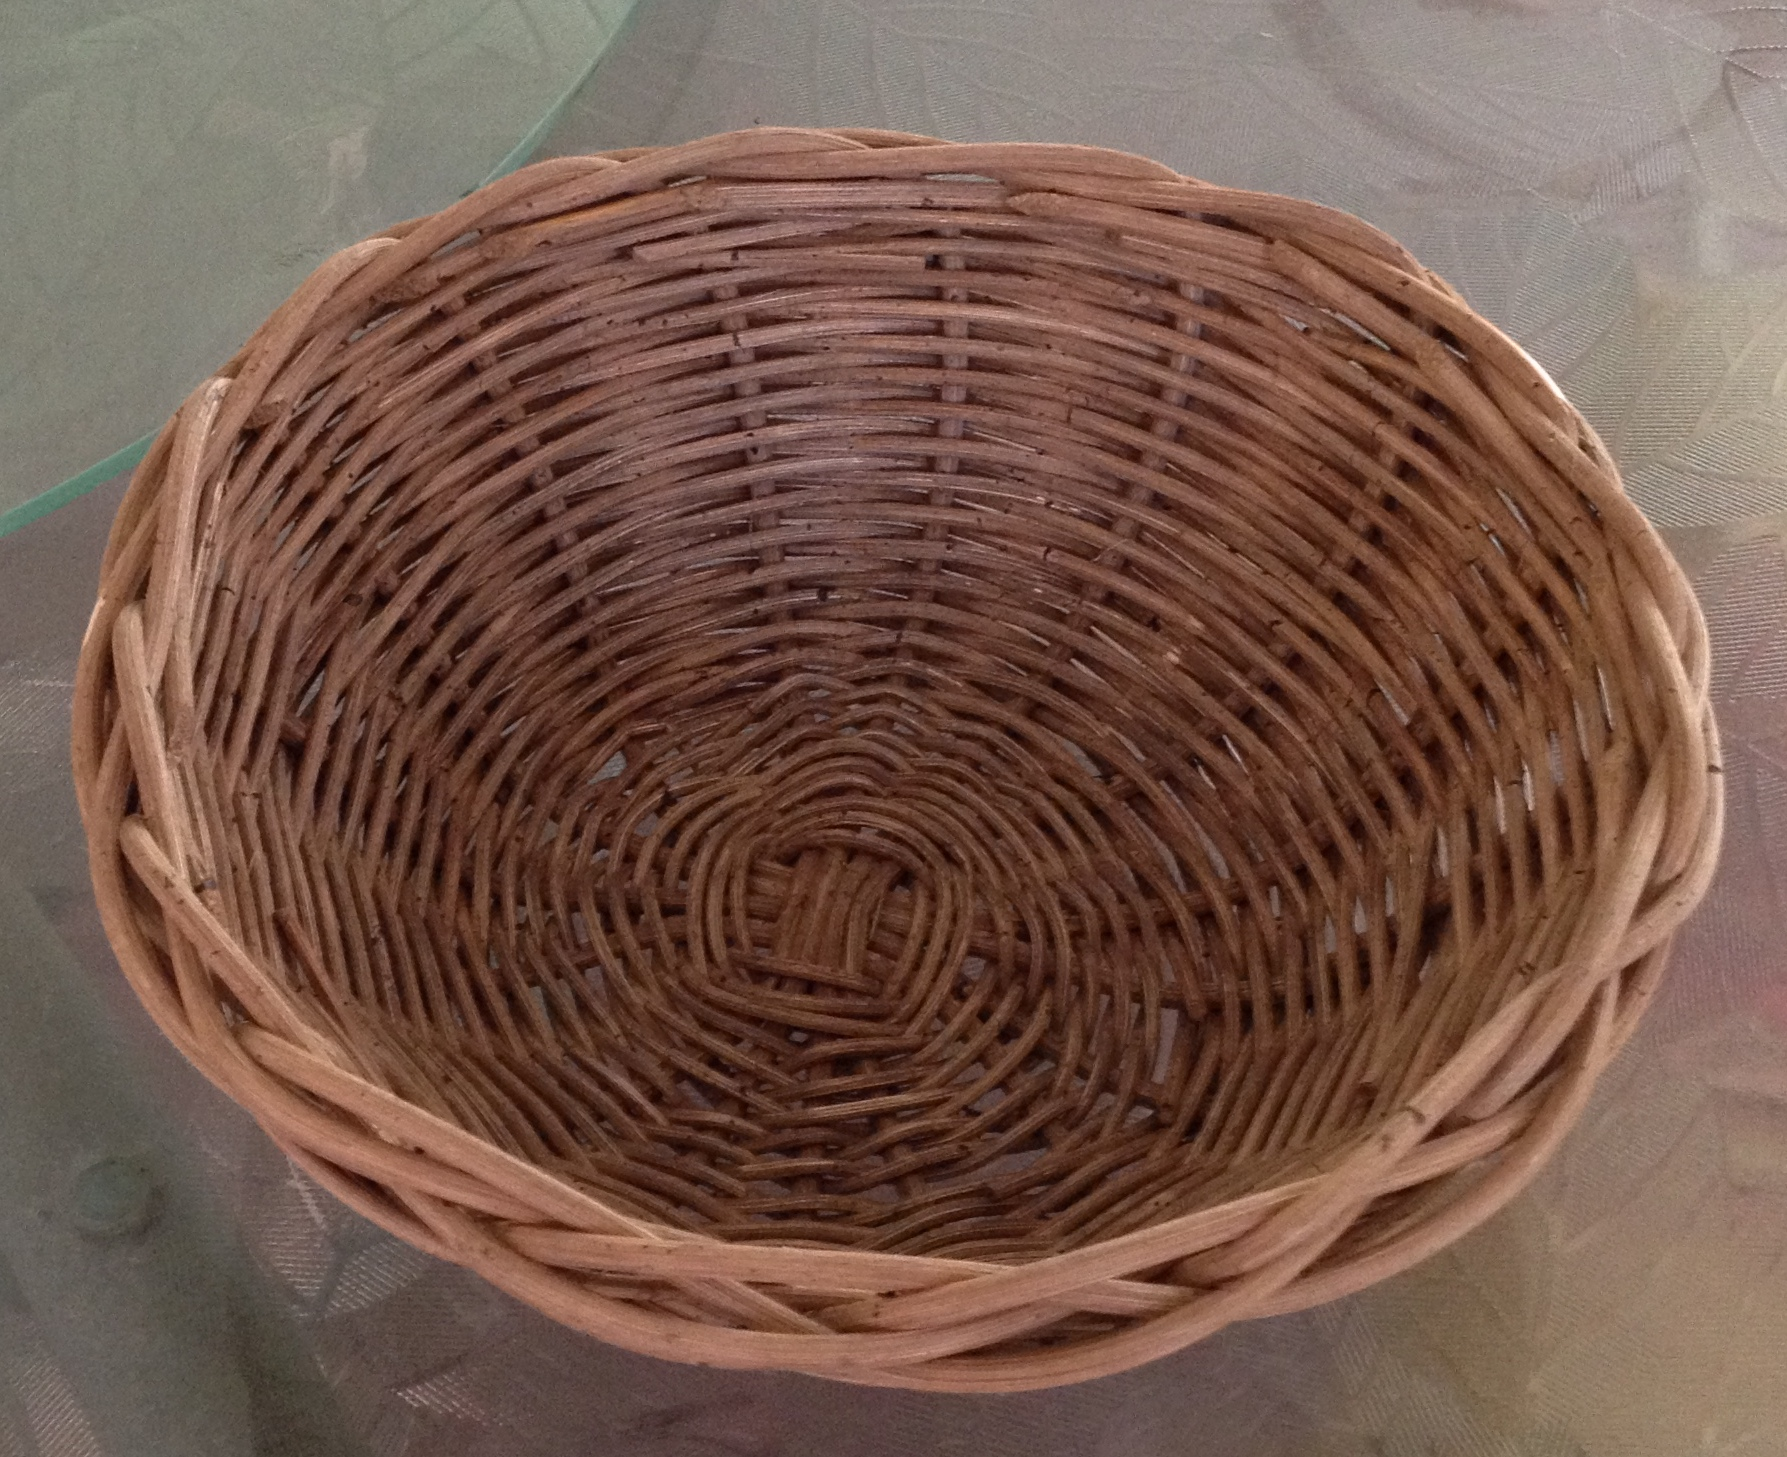 Wicker Fruit Bowl Basket Class, Cootie Coo Creations, High Springs, FL